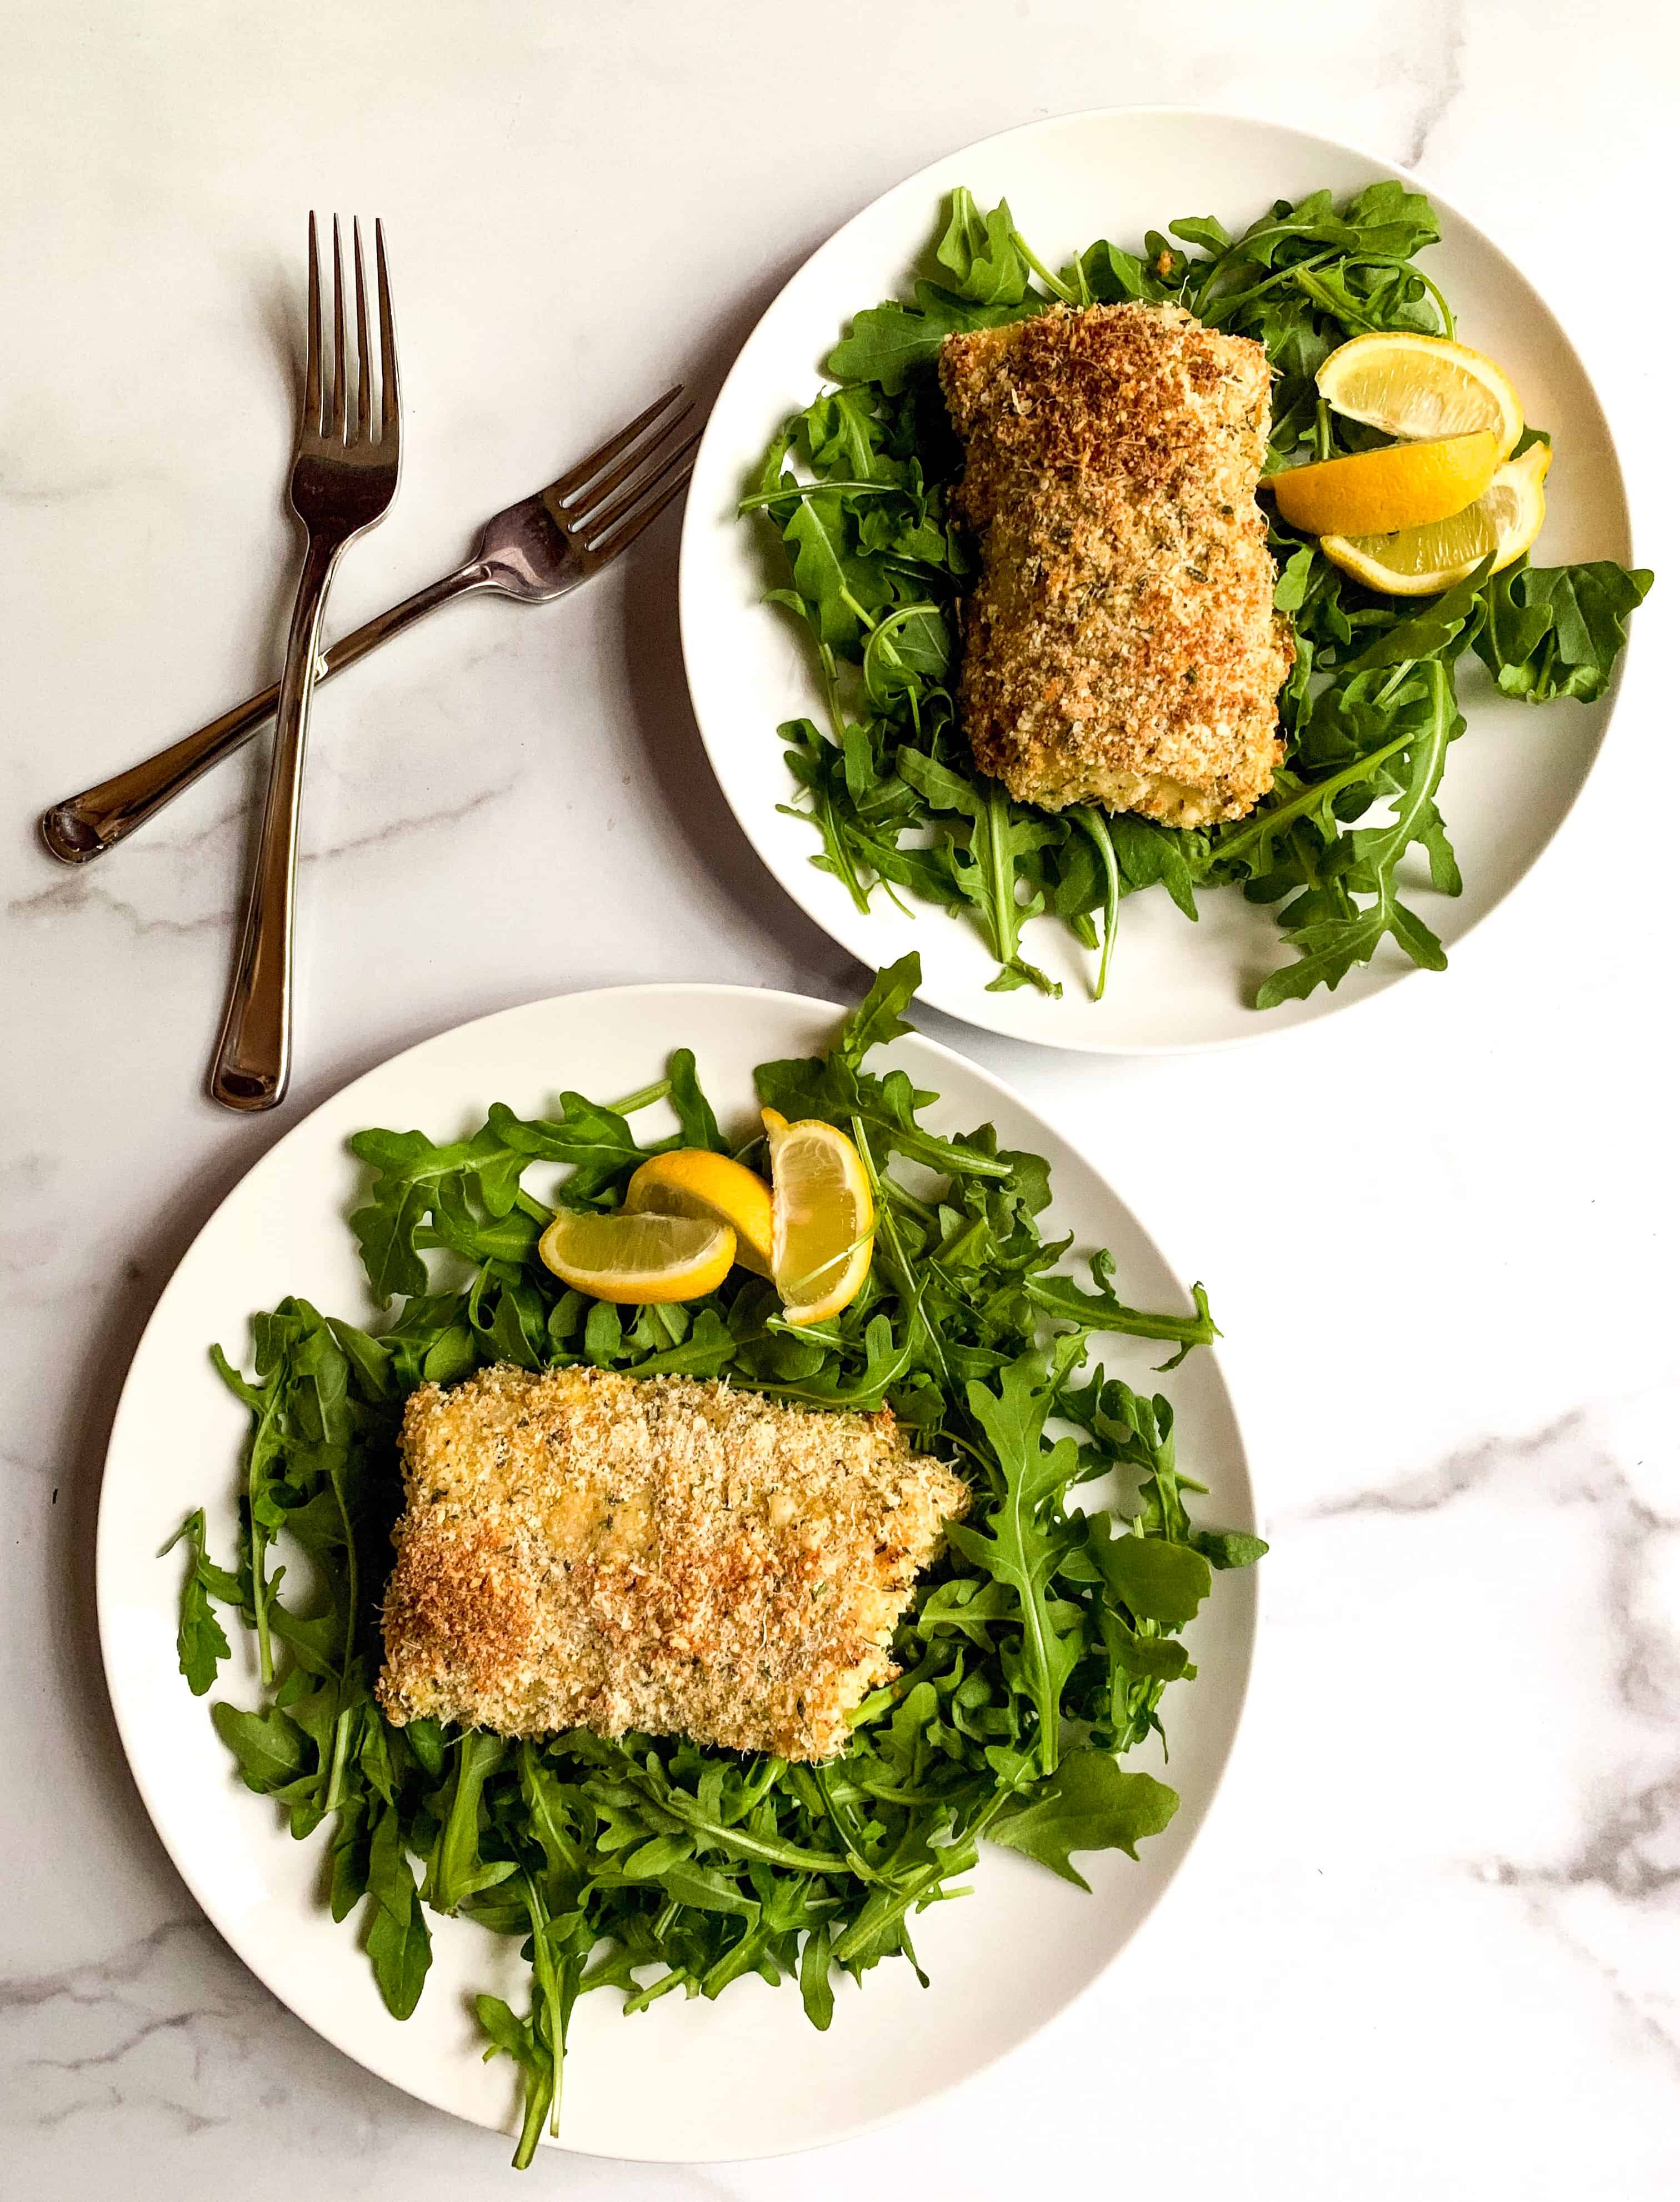 panko and rosemary breaded cod his and hers plates